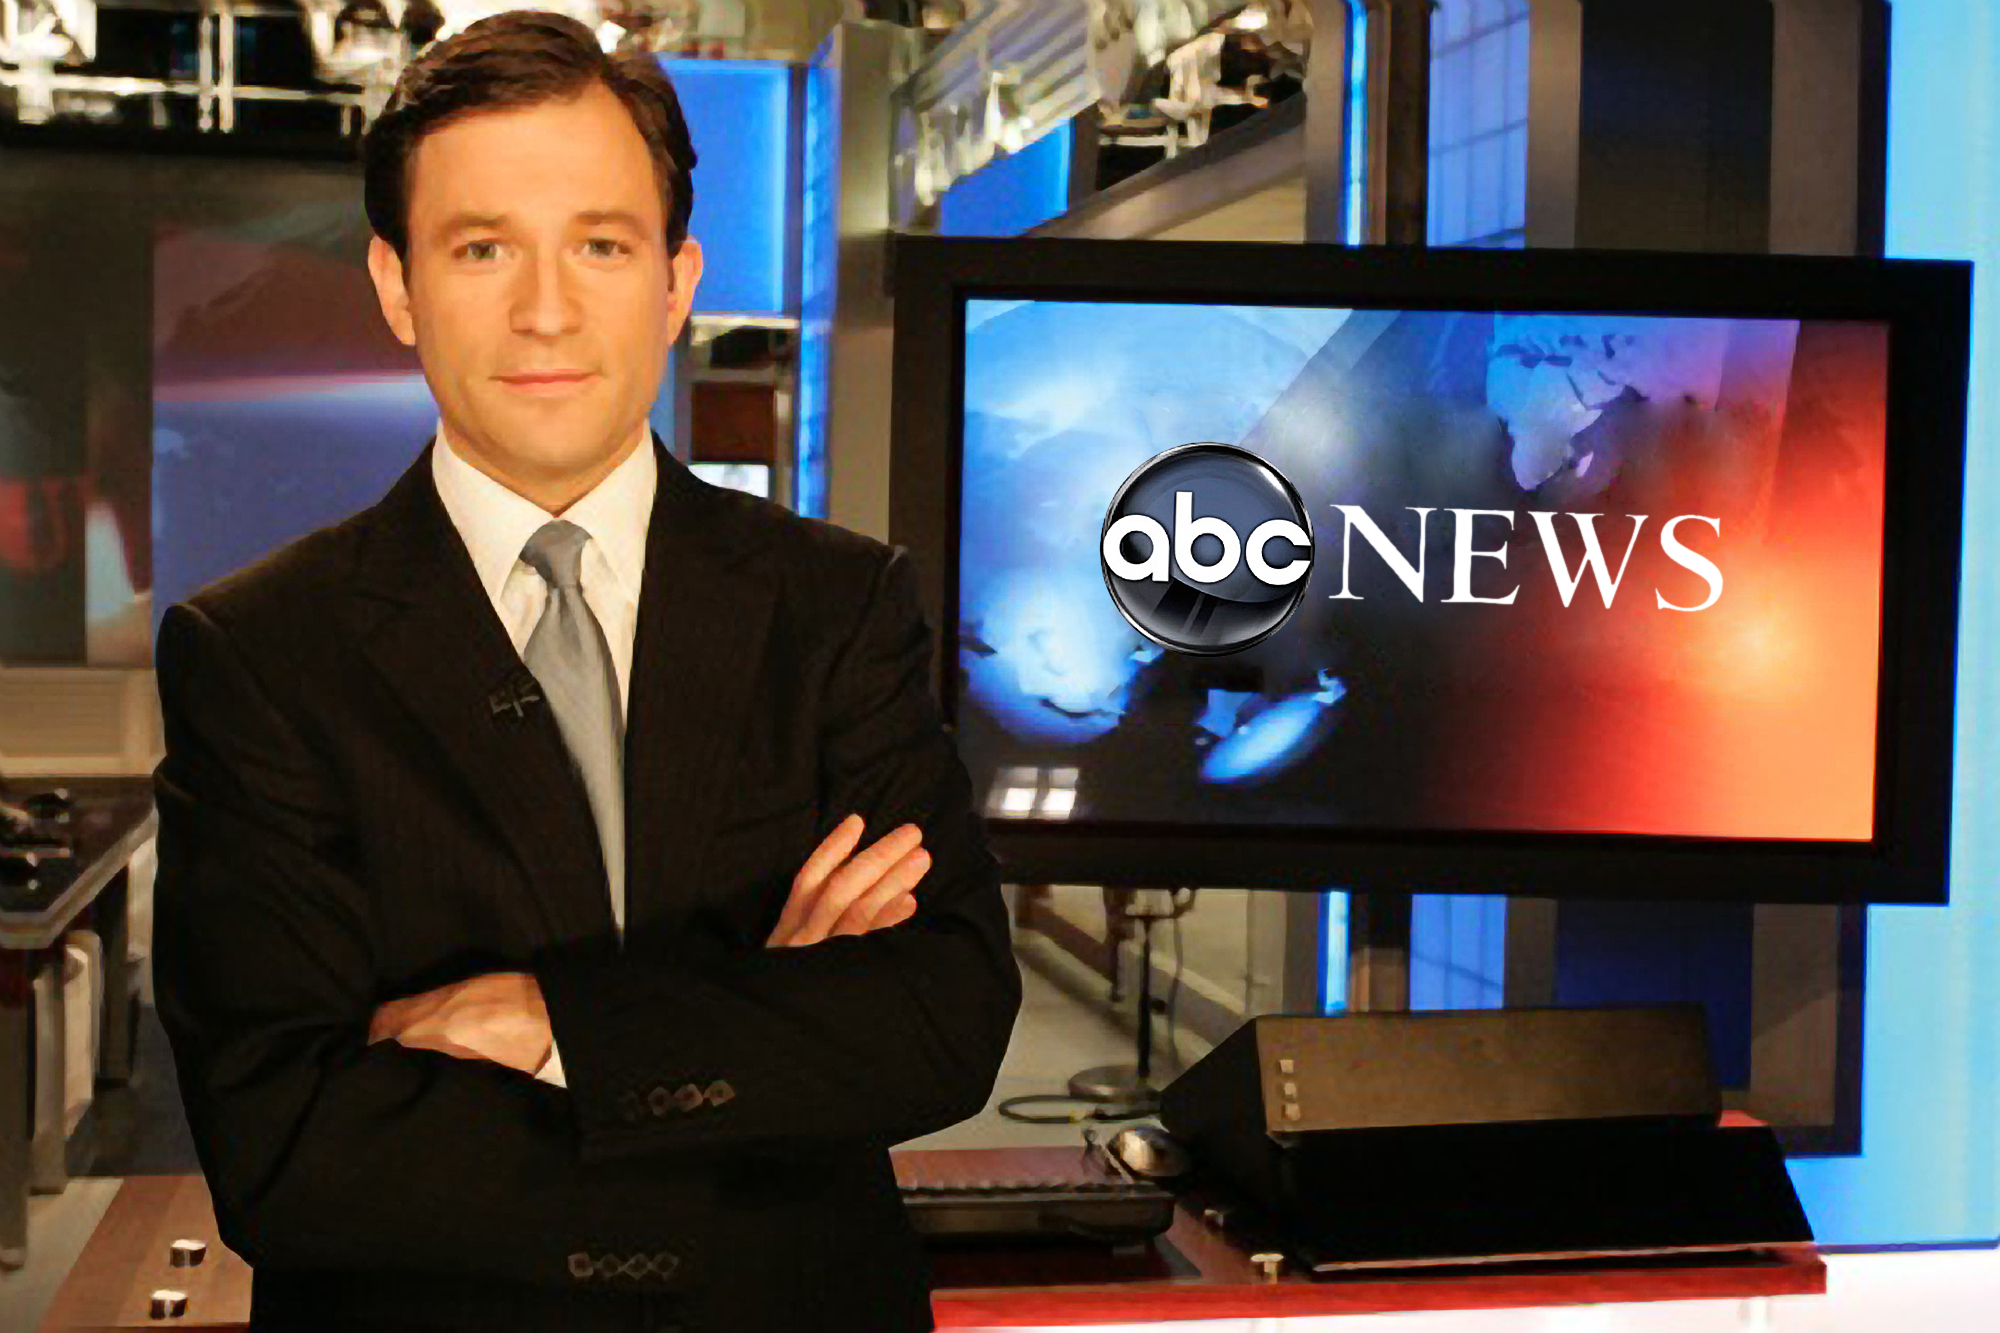 ABC News Picture: Dan Harris, ABC News Anchor And Author Of '10% Happier